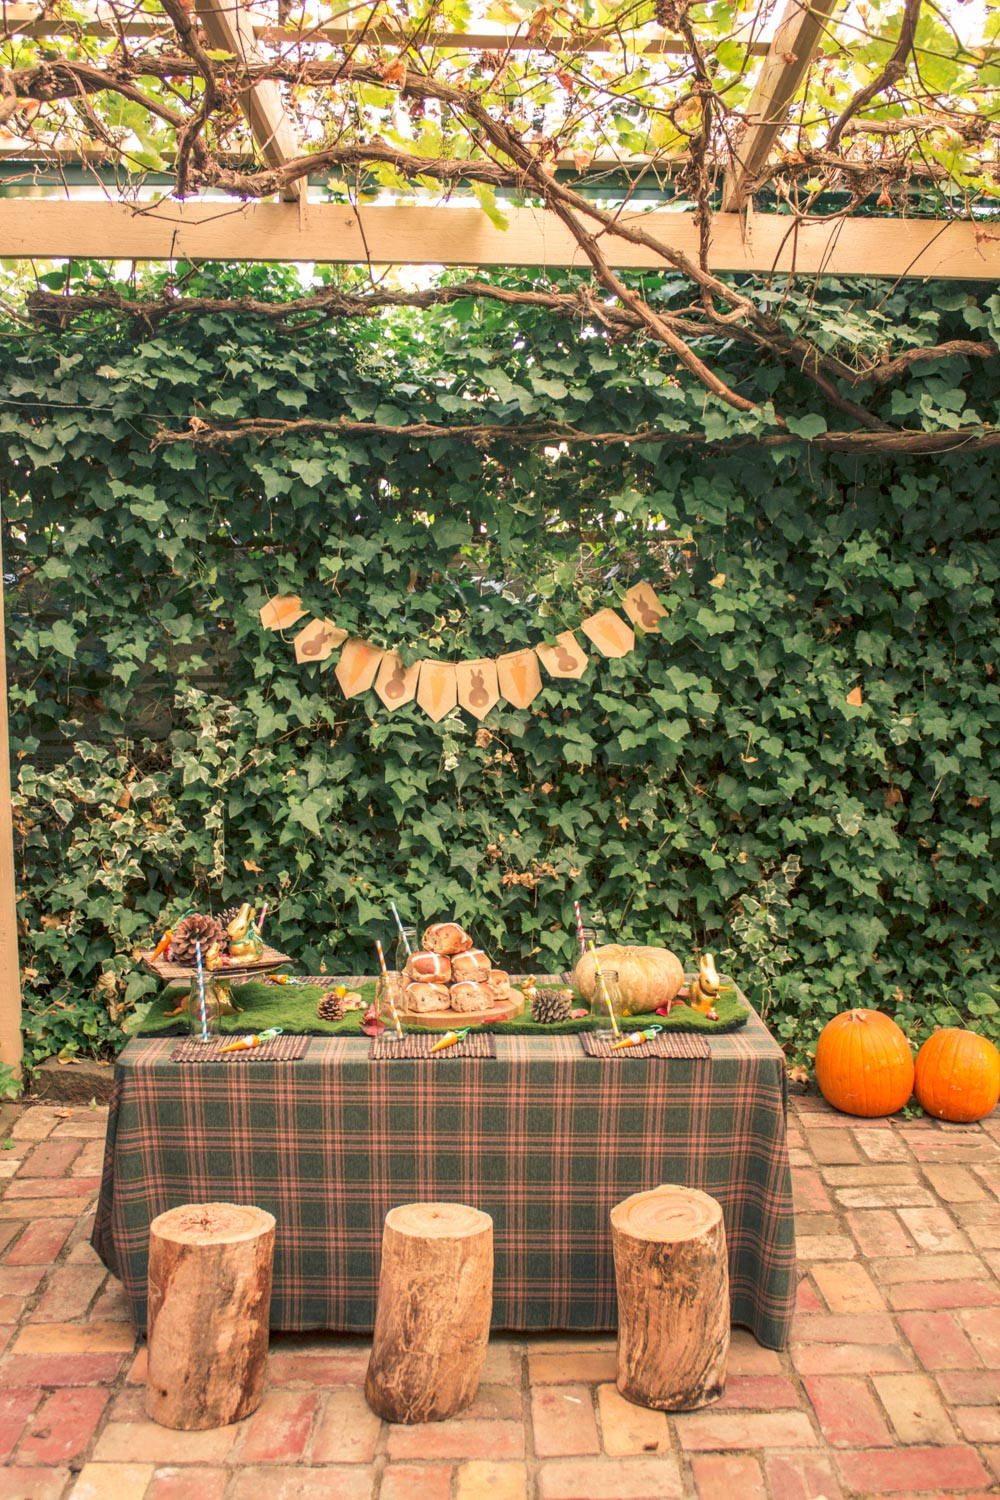 Children party table decorated with bunting, pumpkins, wooden logs and woodland themed styling at autumn easter egg hunt in Australia